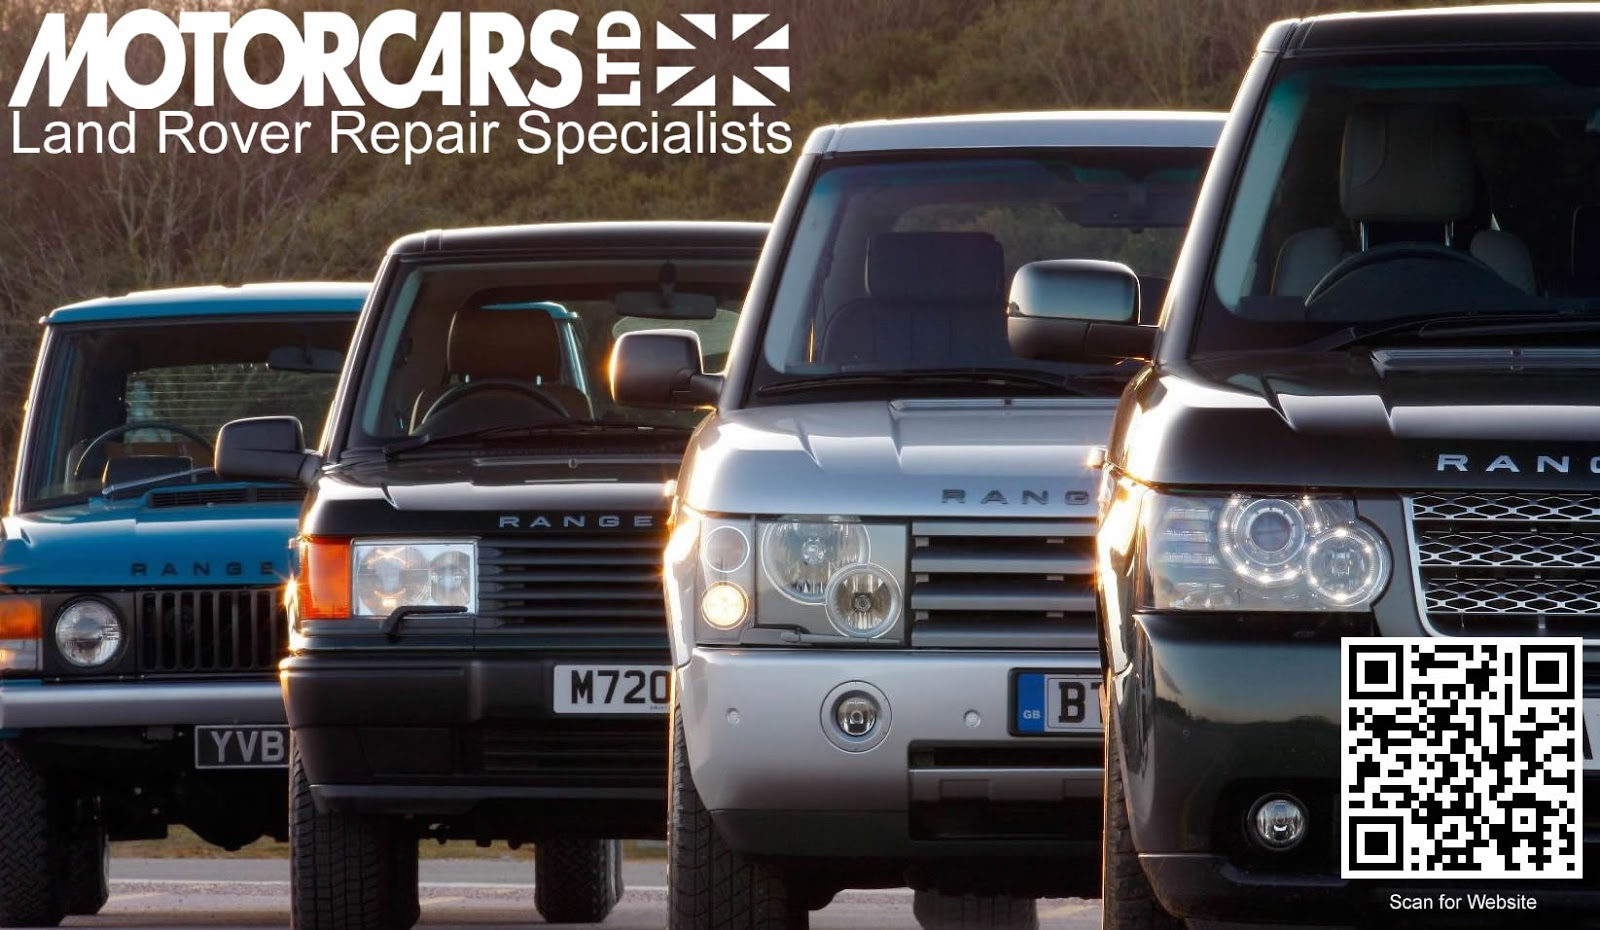 Houston Texas - Independent Land Rover Repair Specialists ...